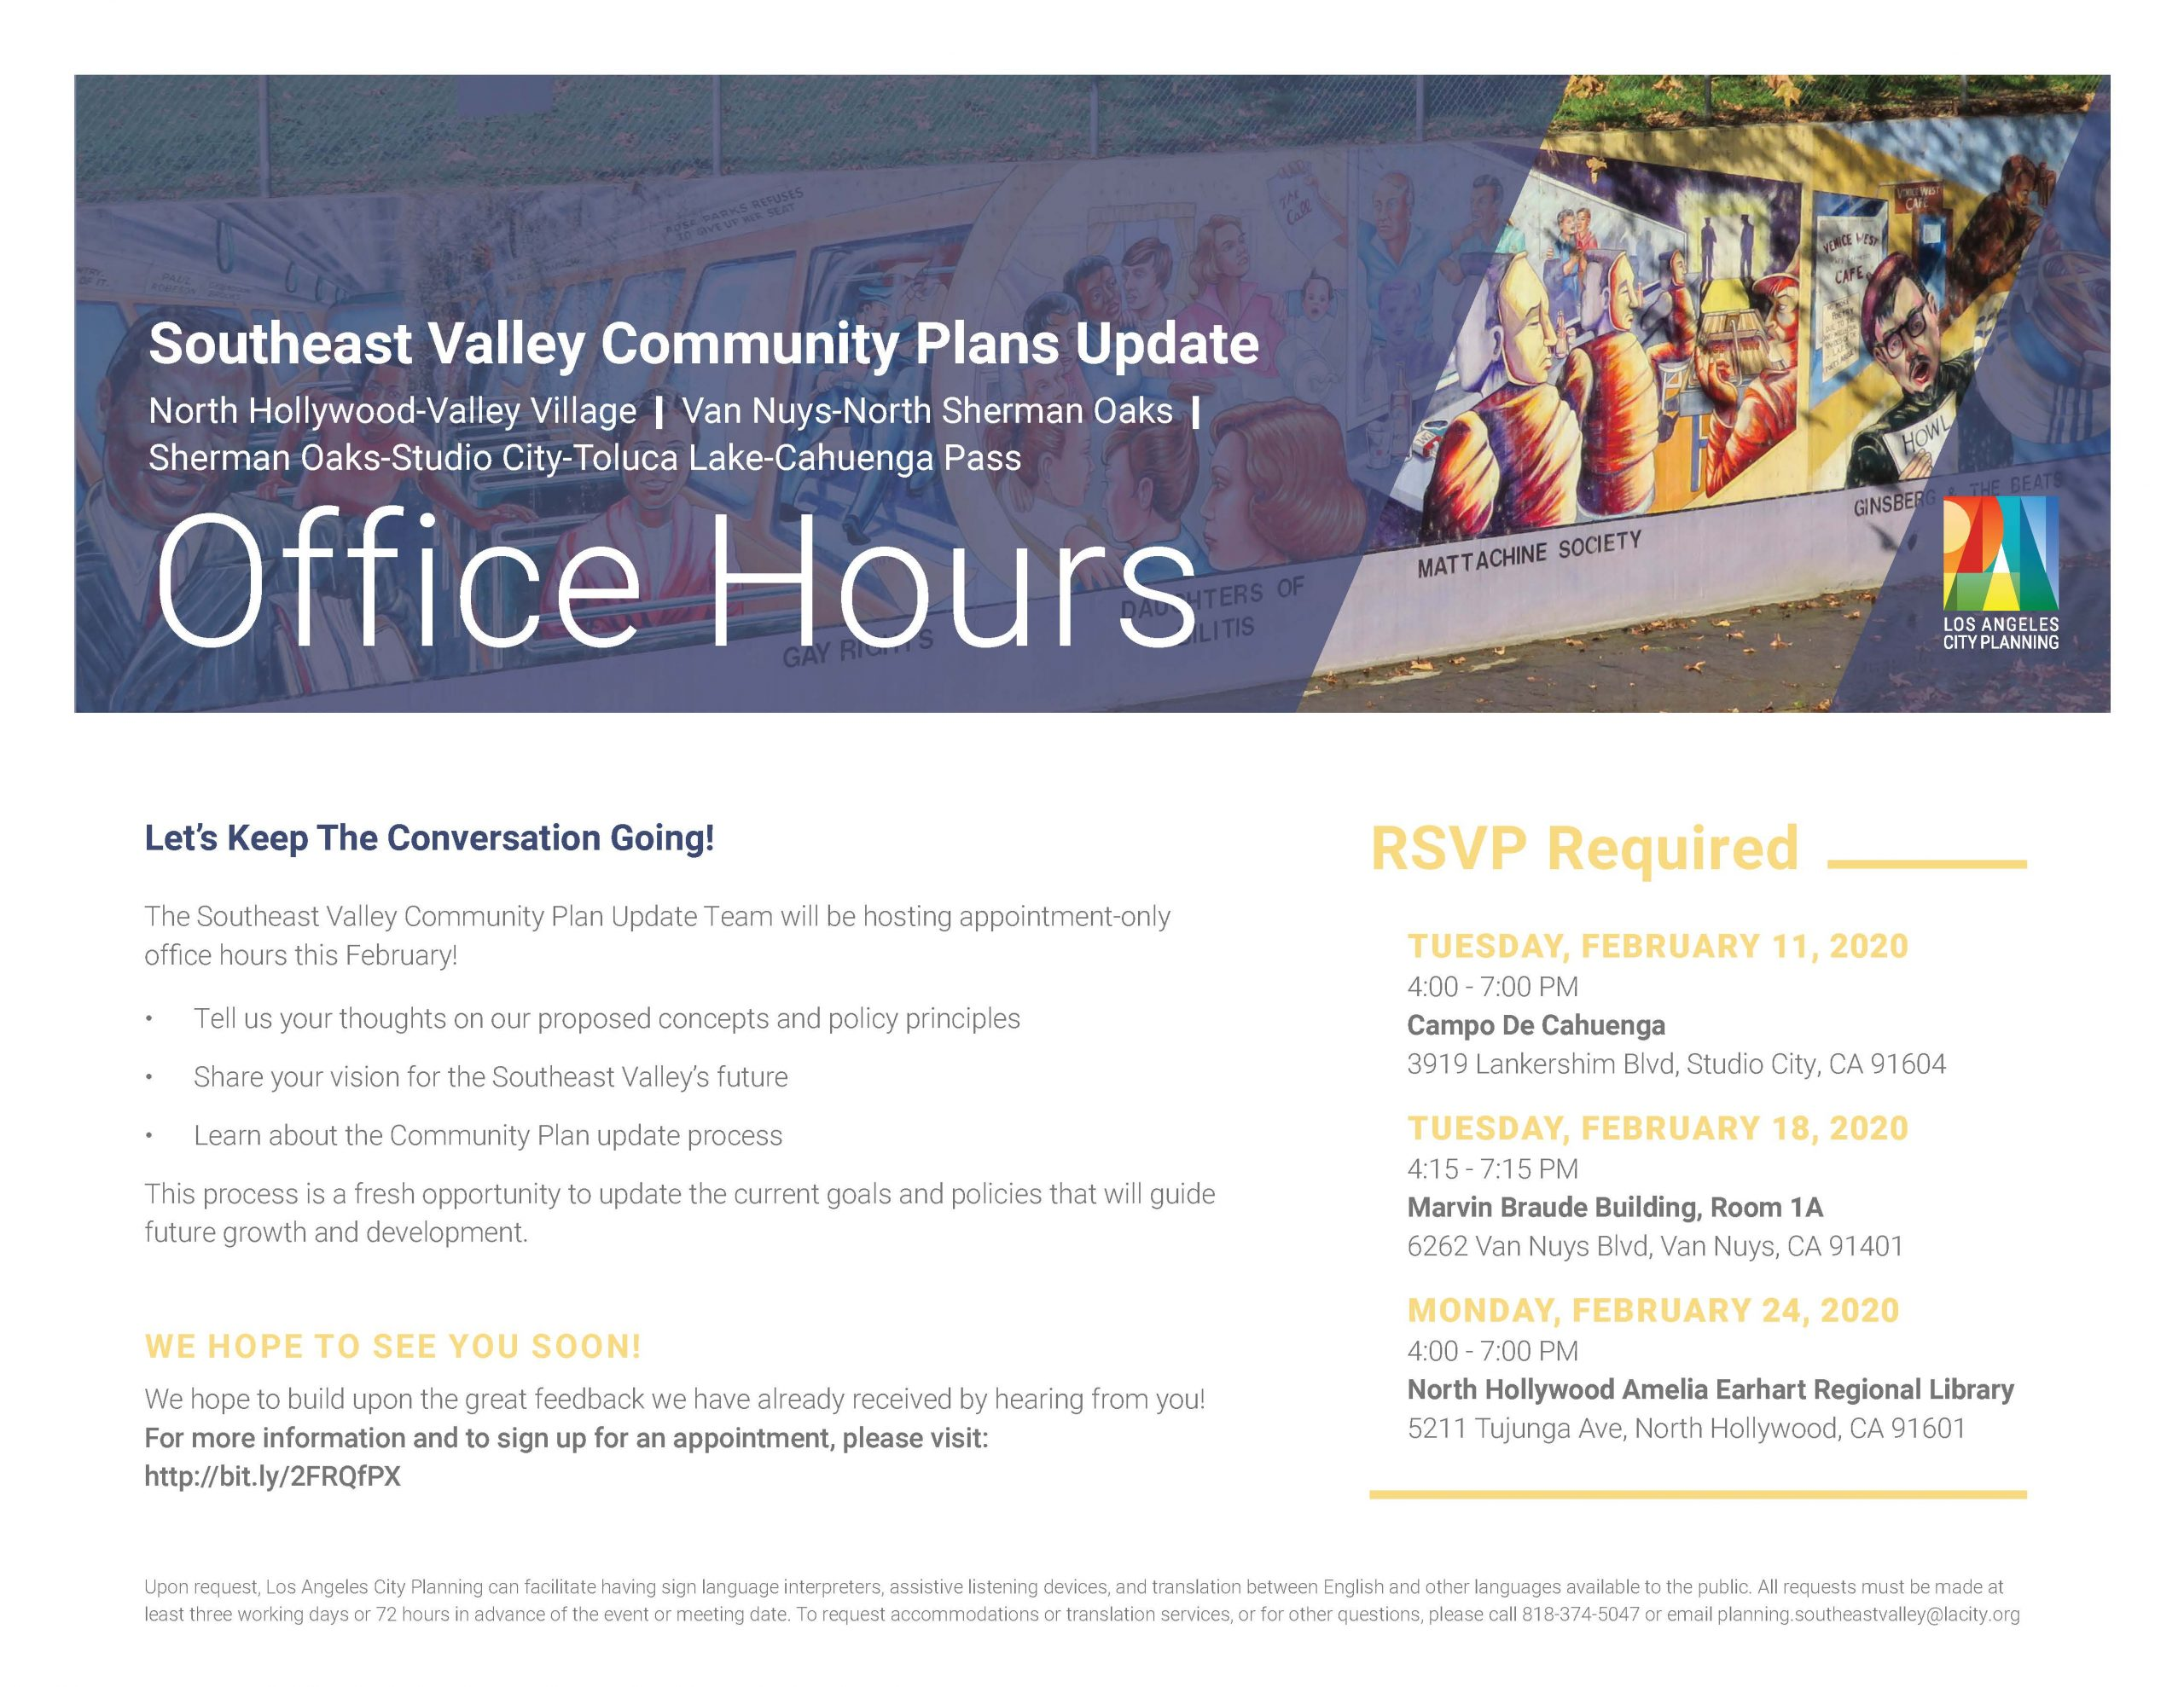 Southeast Community Plan Office Hours